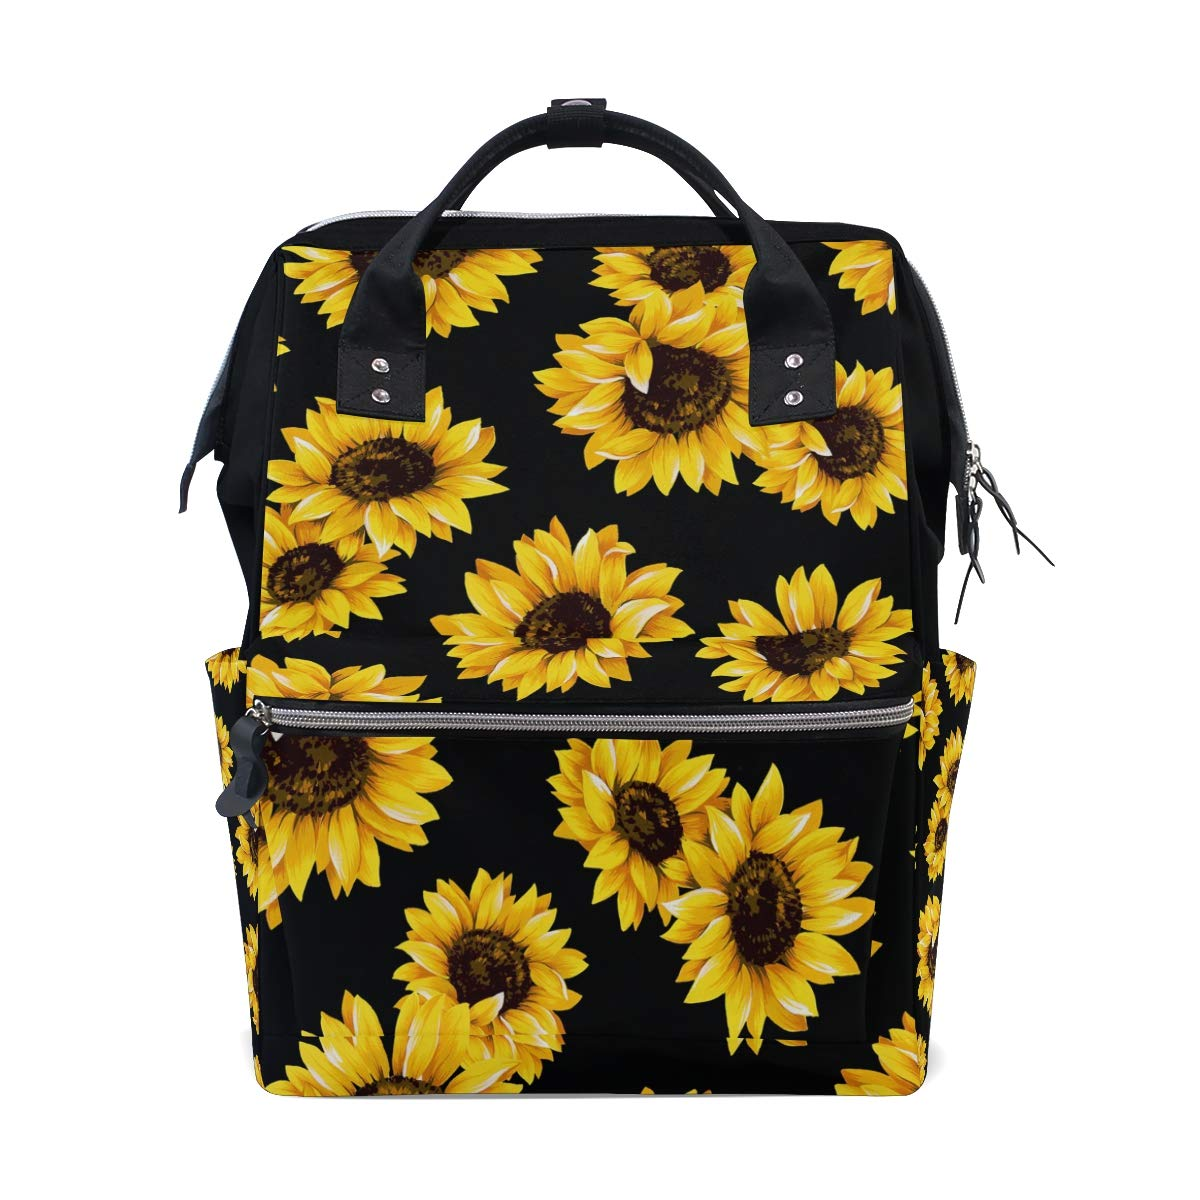 AUUXVA Diaper Backpack Flower Sunflower Pattern Multi-Function Large Capacity Baby Changing Bags Zipper Casual Stylish Travel Backpacks for Mom Dad Baby Care